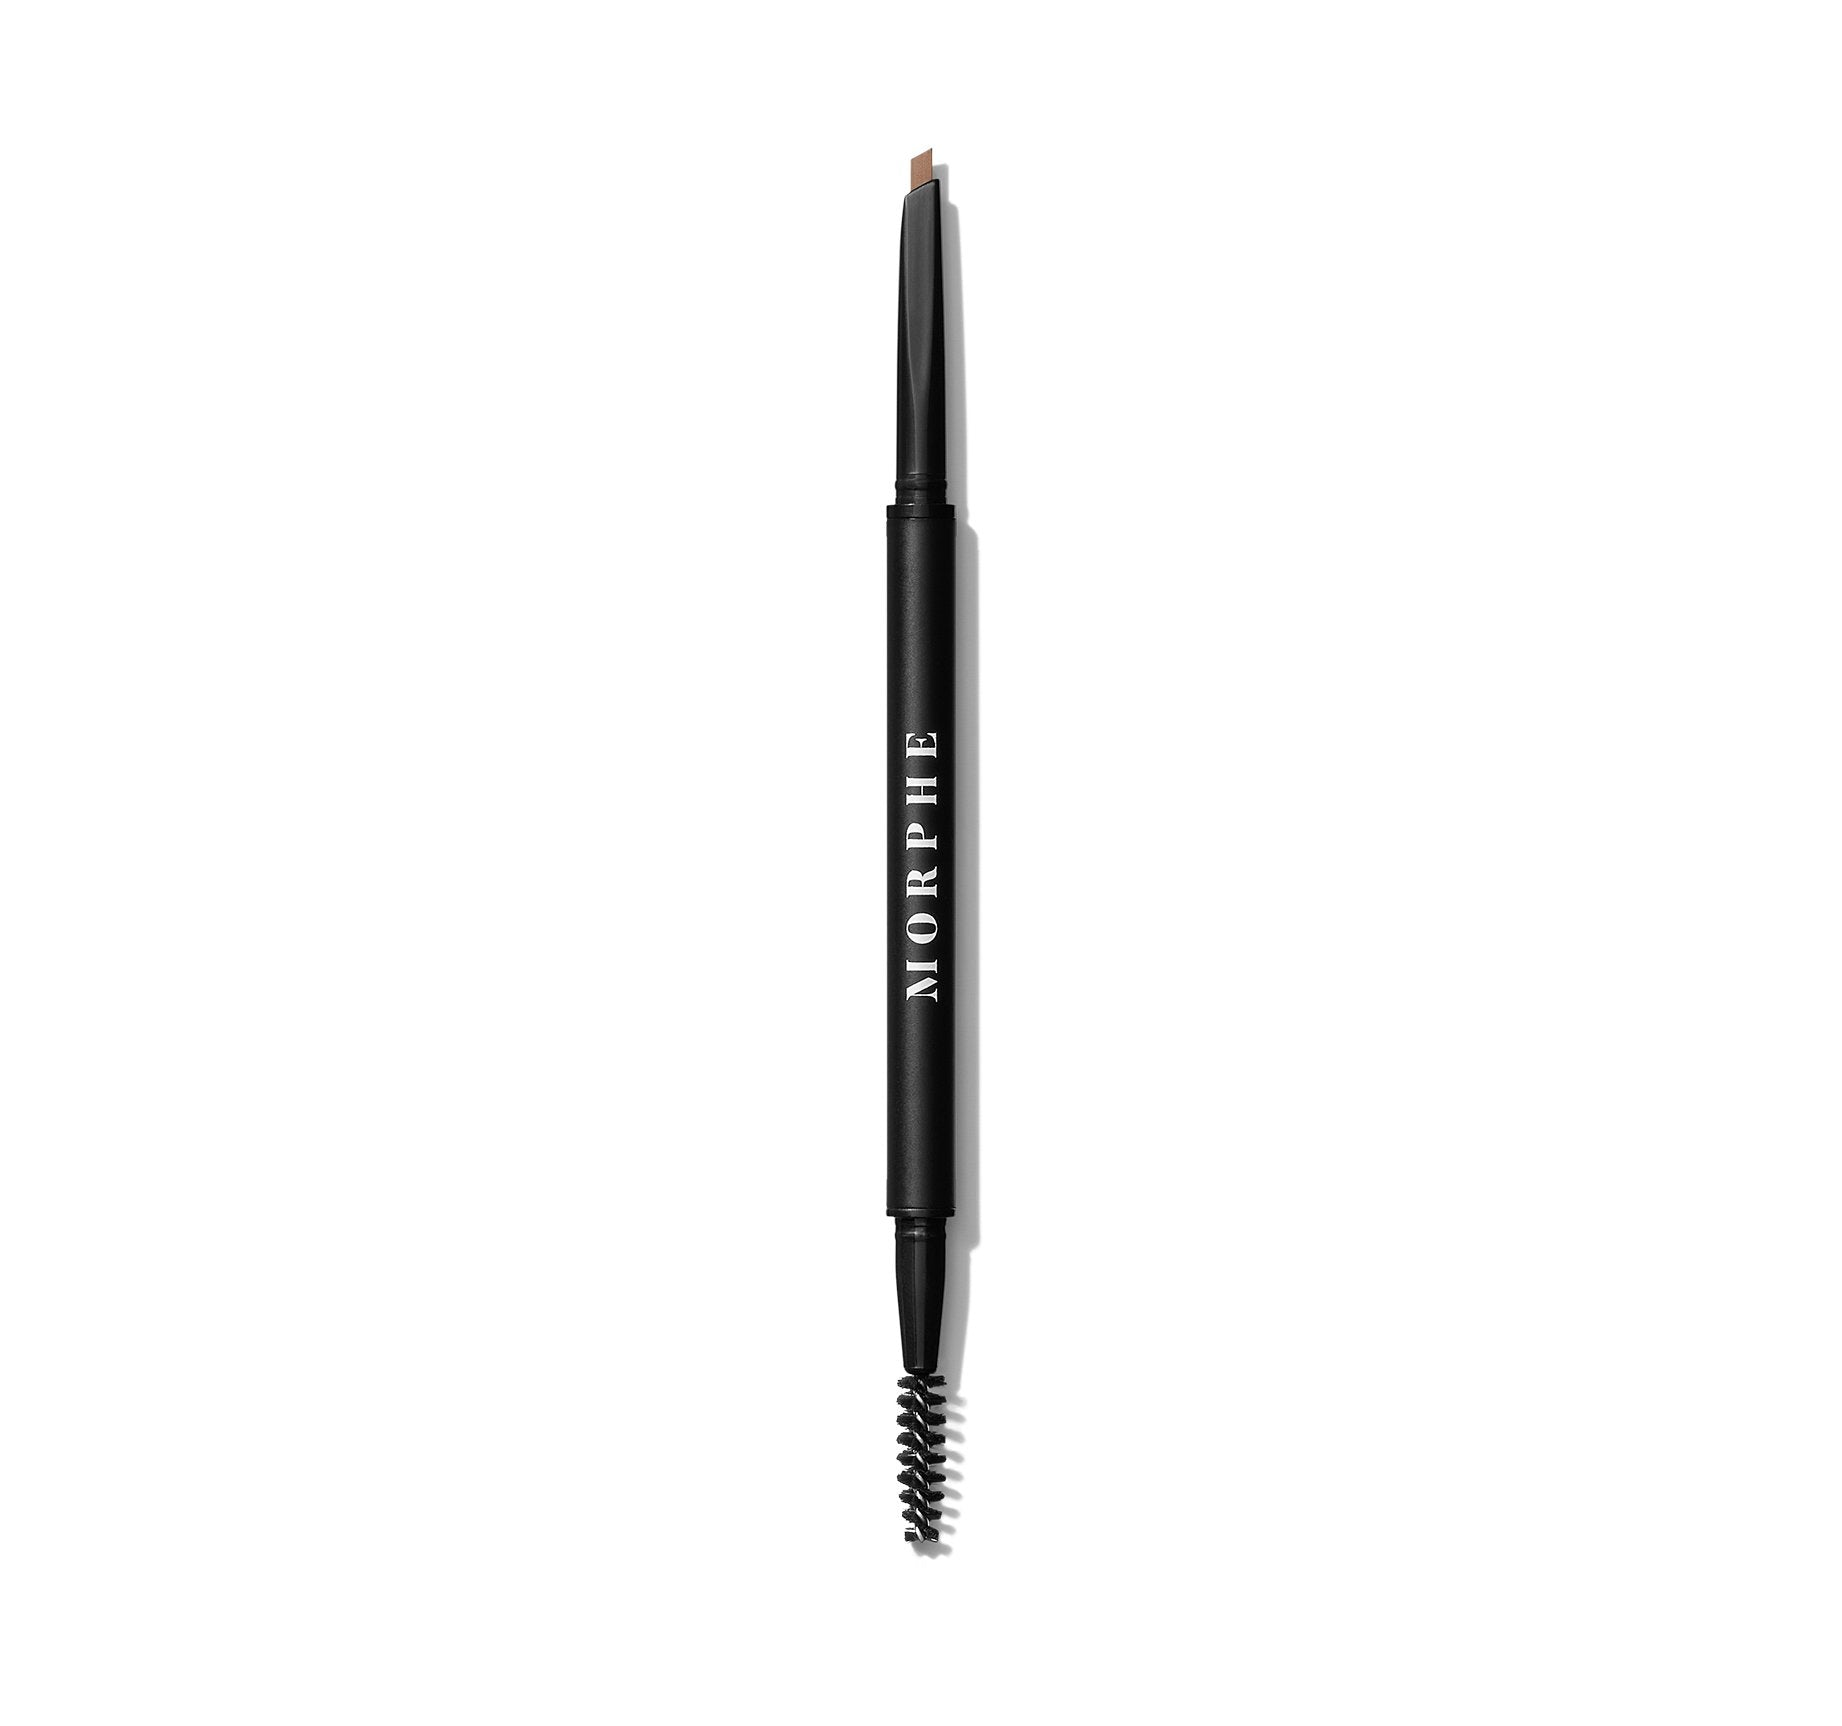 DEFINER BROW PENCIL - ALMOND, view larger image